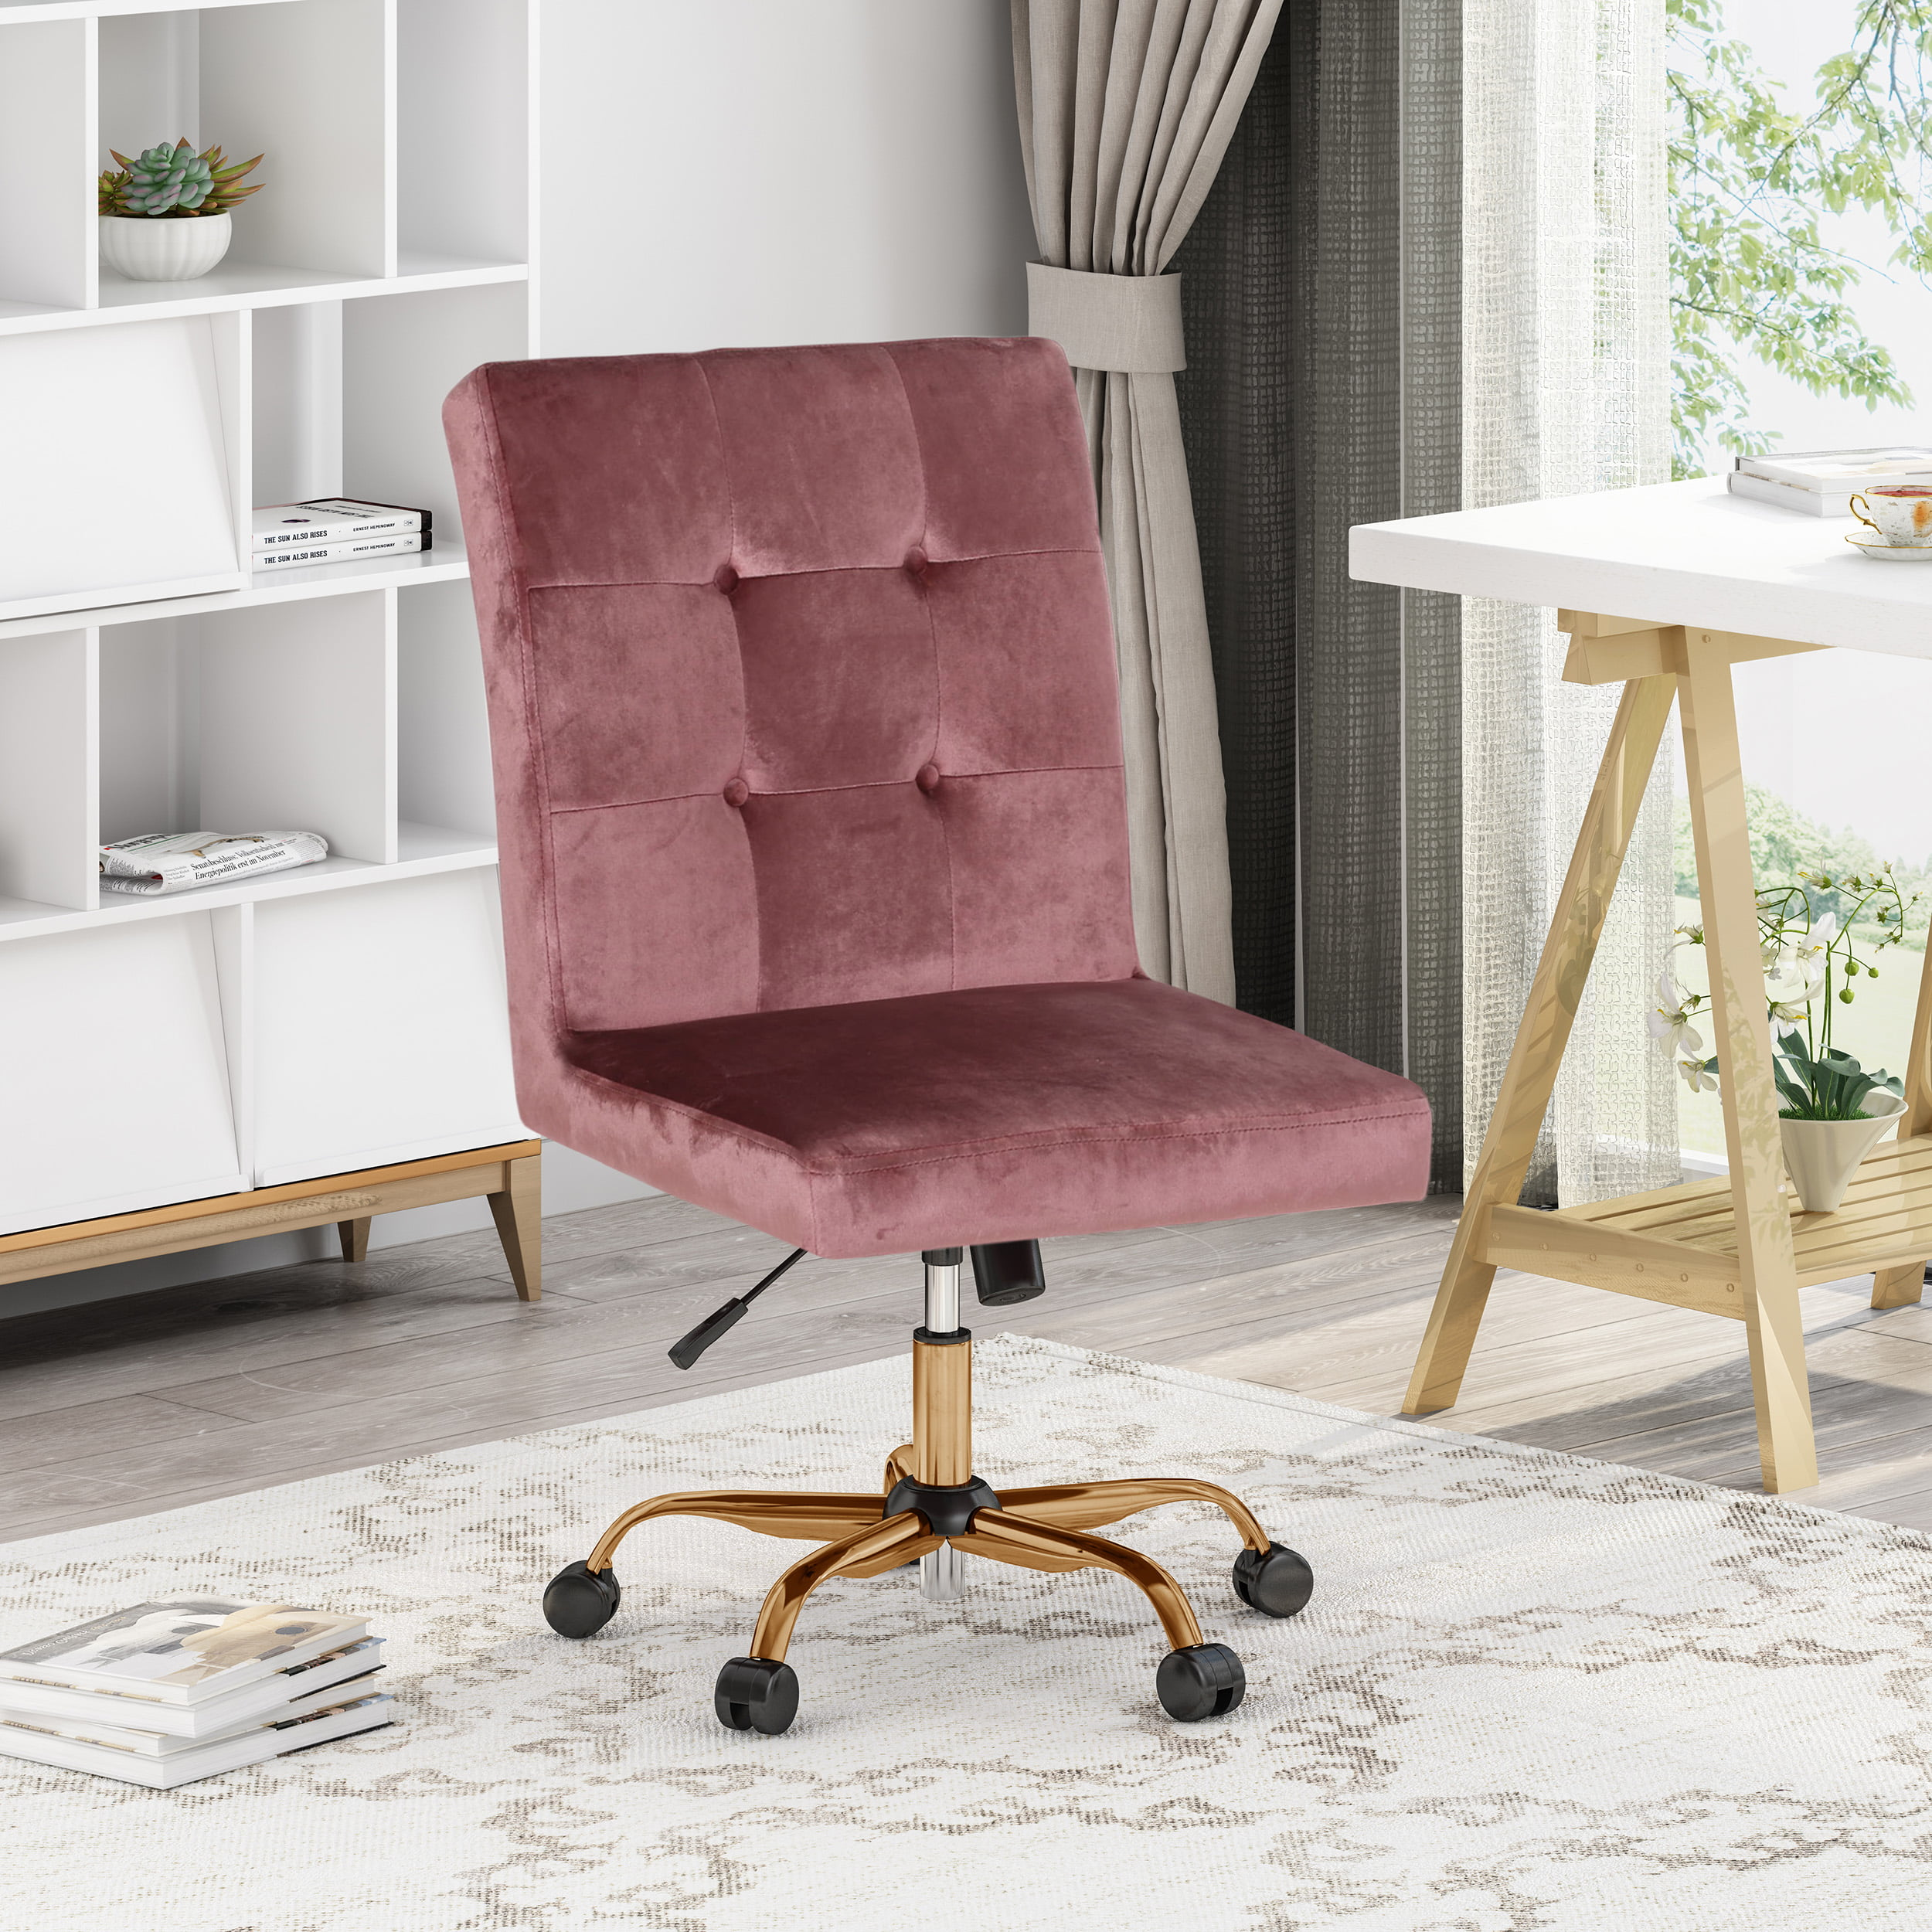 Theodore Glam Tufted Home Office Chair With Swivel Base Blush And Rose Gold Finish Walmart Com Walmart Com